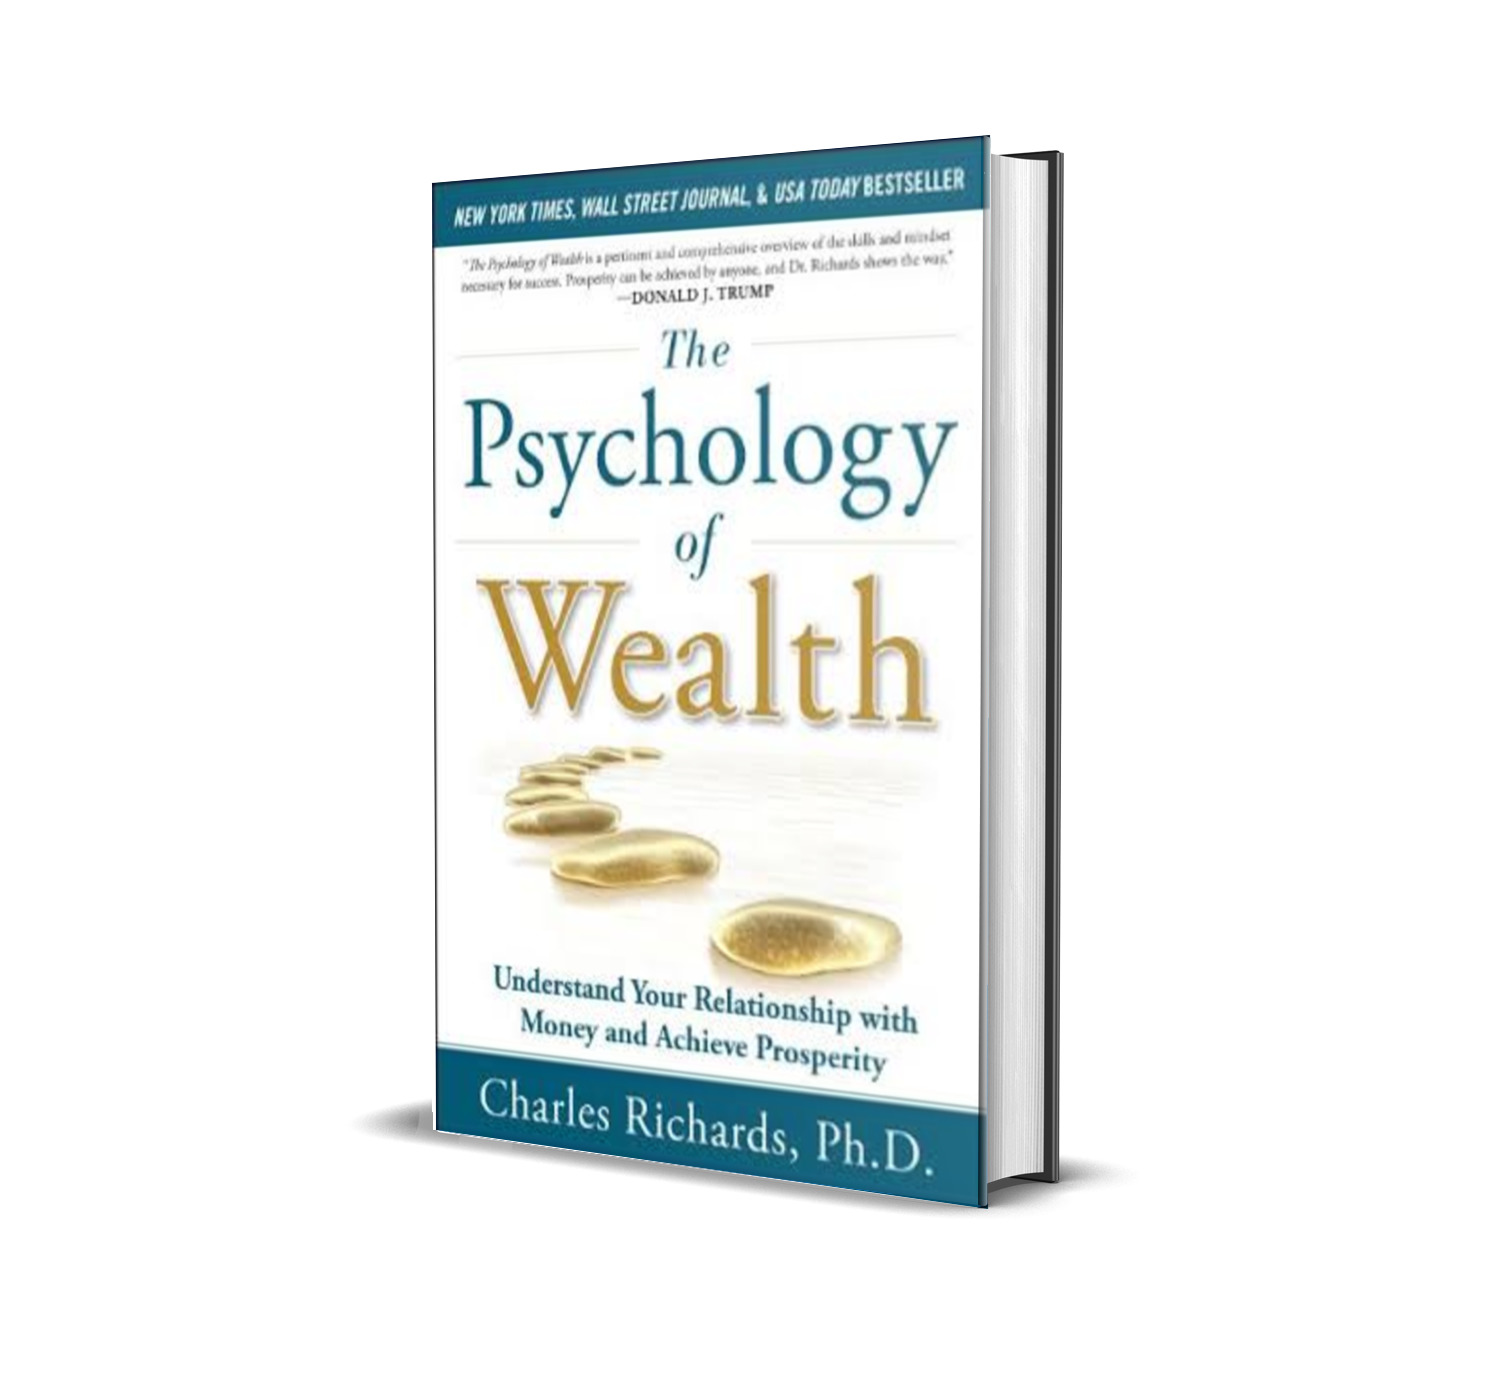 The psychology of wealth- Charles Richards